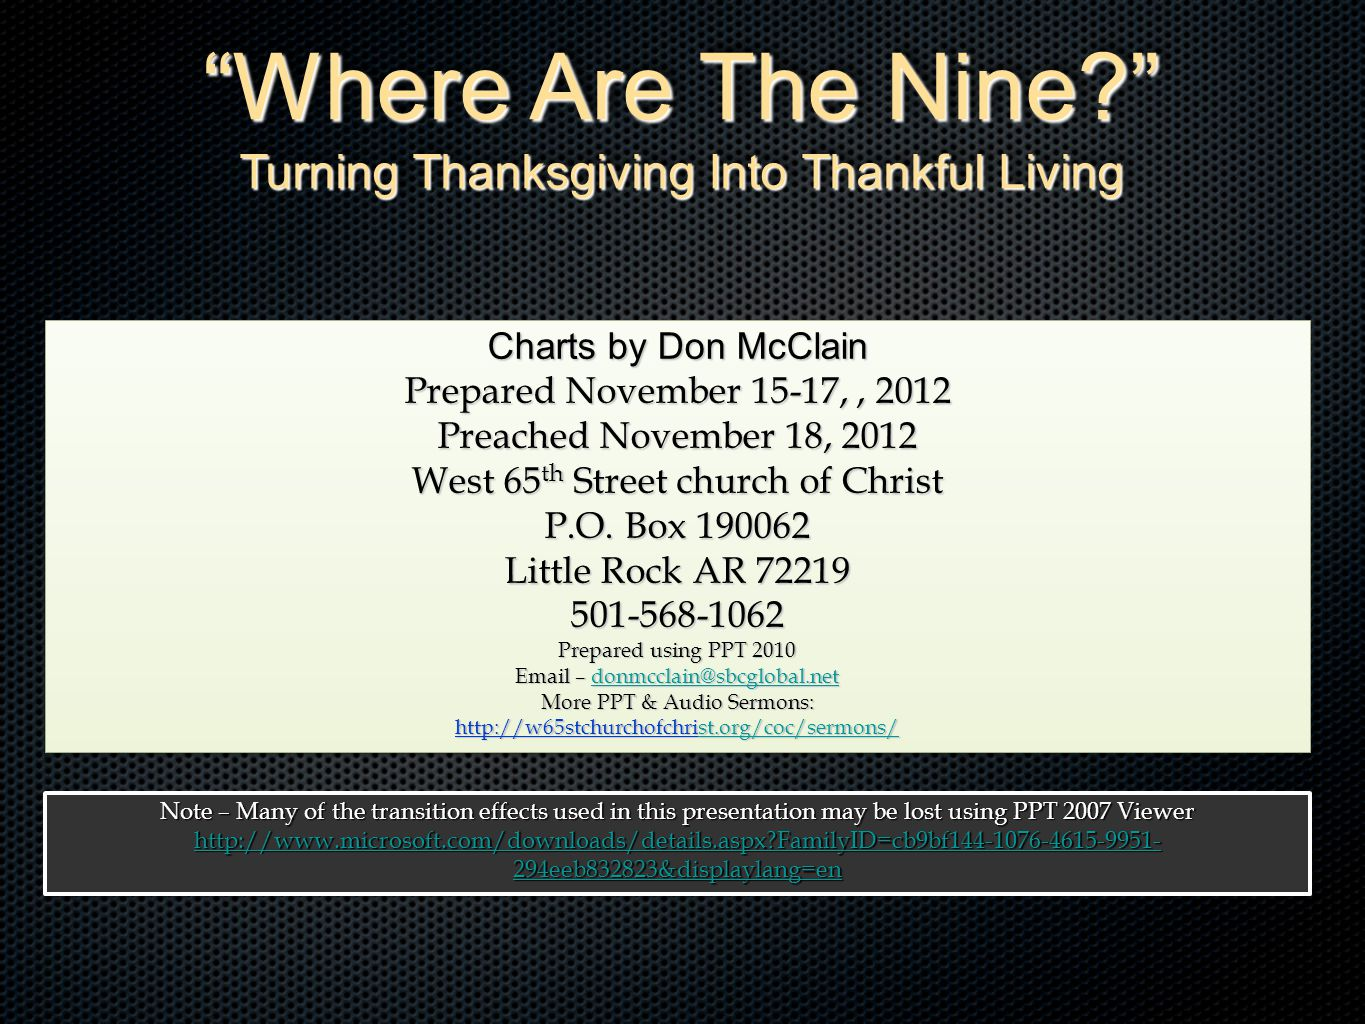 Where Are The Nine Turning Thanksgiving Into Thankful Living